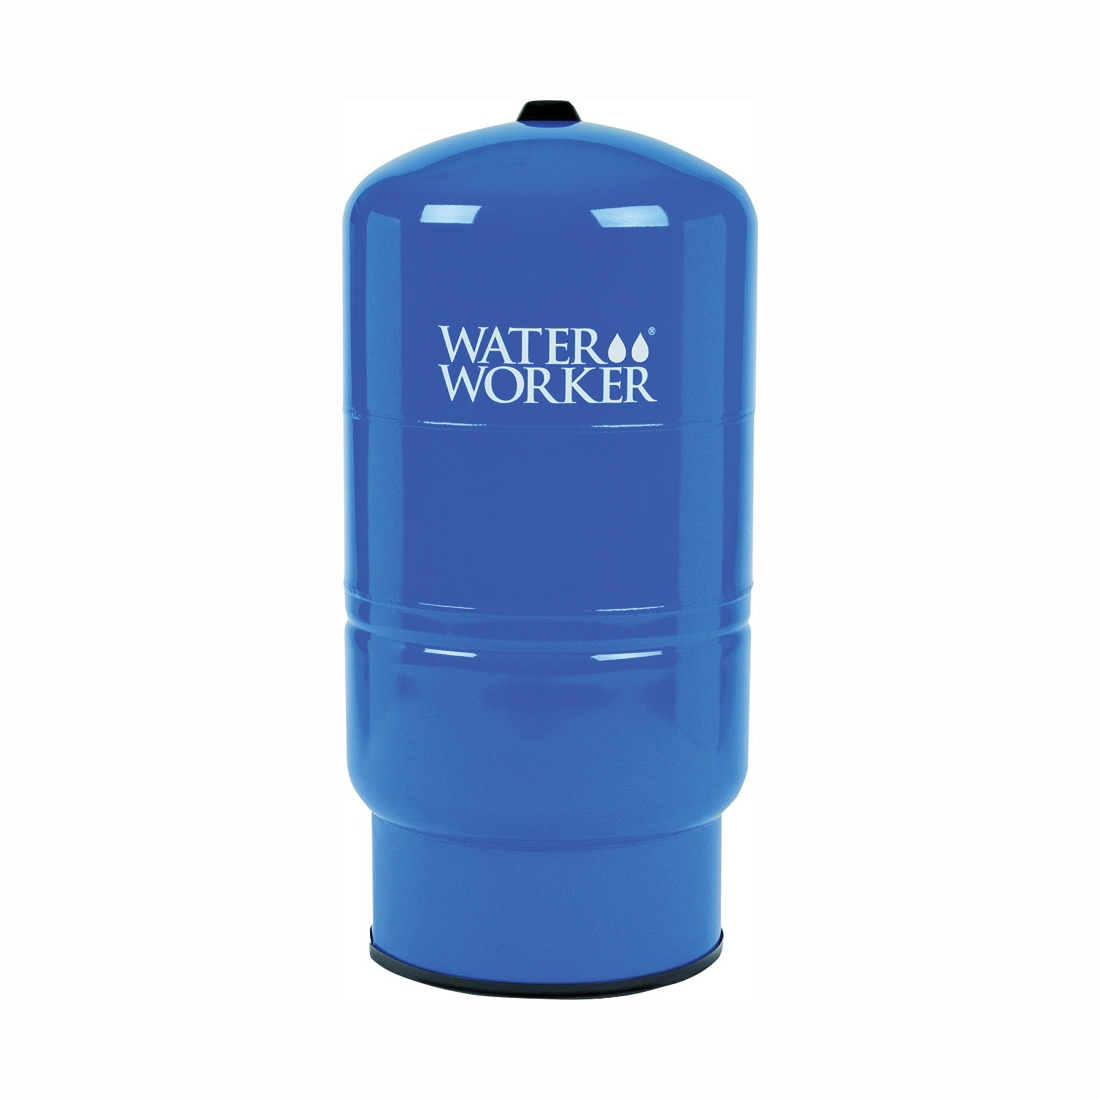 Picture of WATER WORKER HT-32B Well Tank, 32 gal Capacity, 100 psi Working, Steel